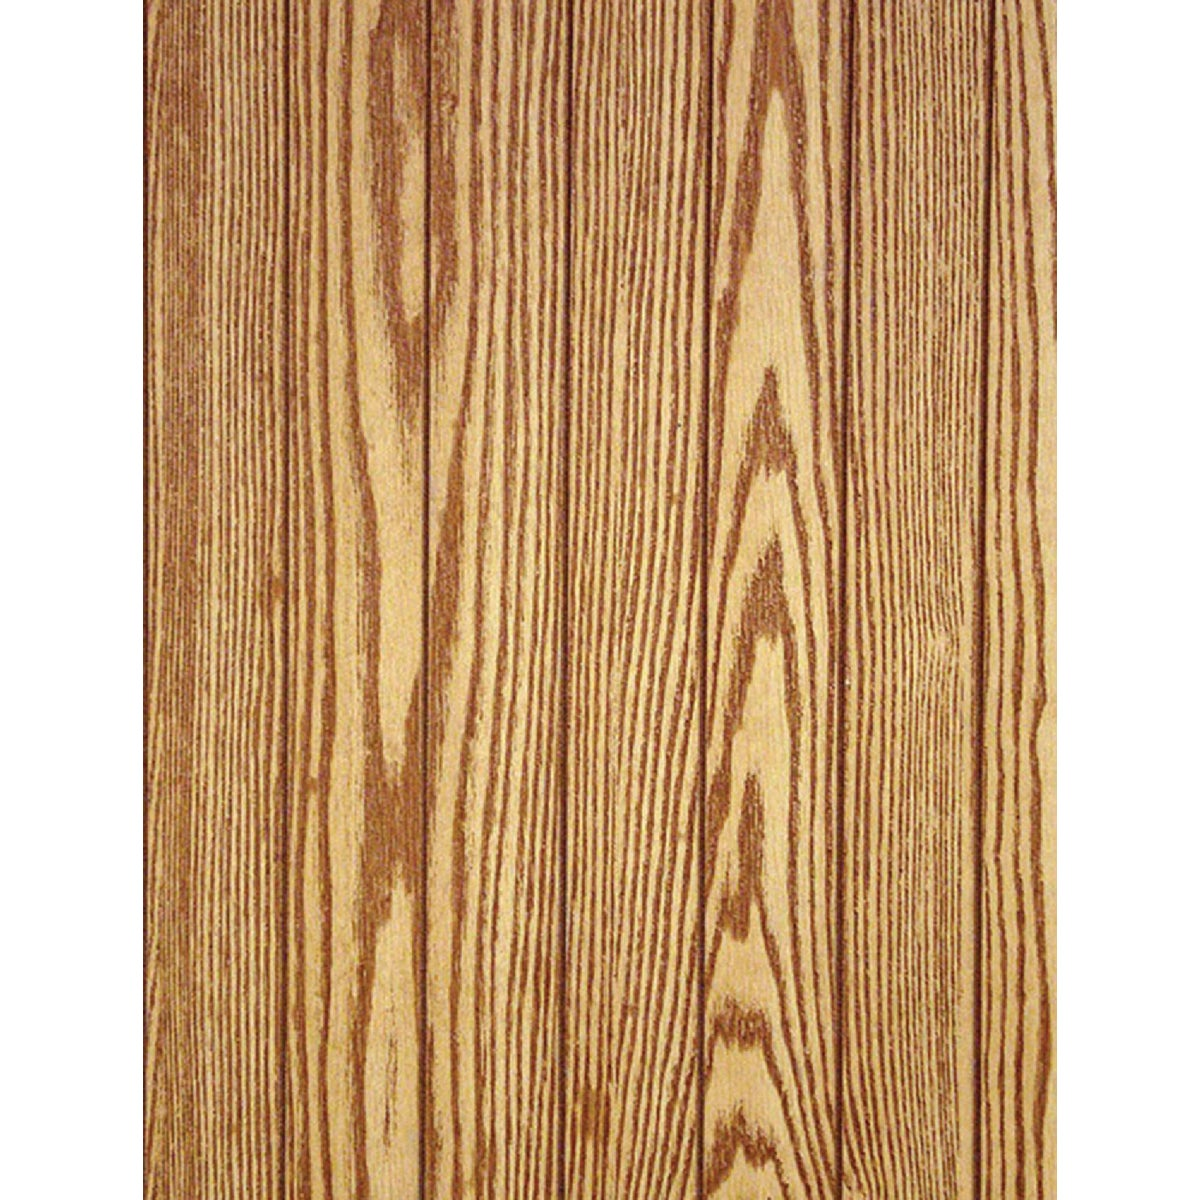 "3/16"" CHESTNUT PANELING - 161 by Dpi Decorative Panel"